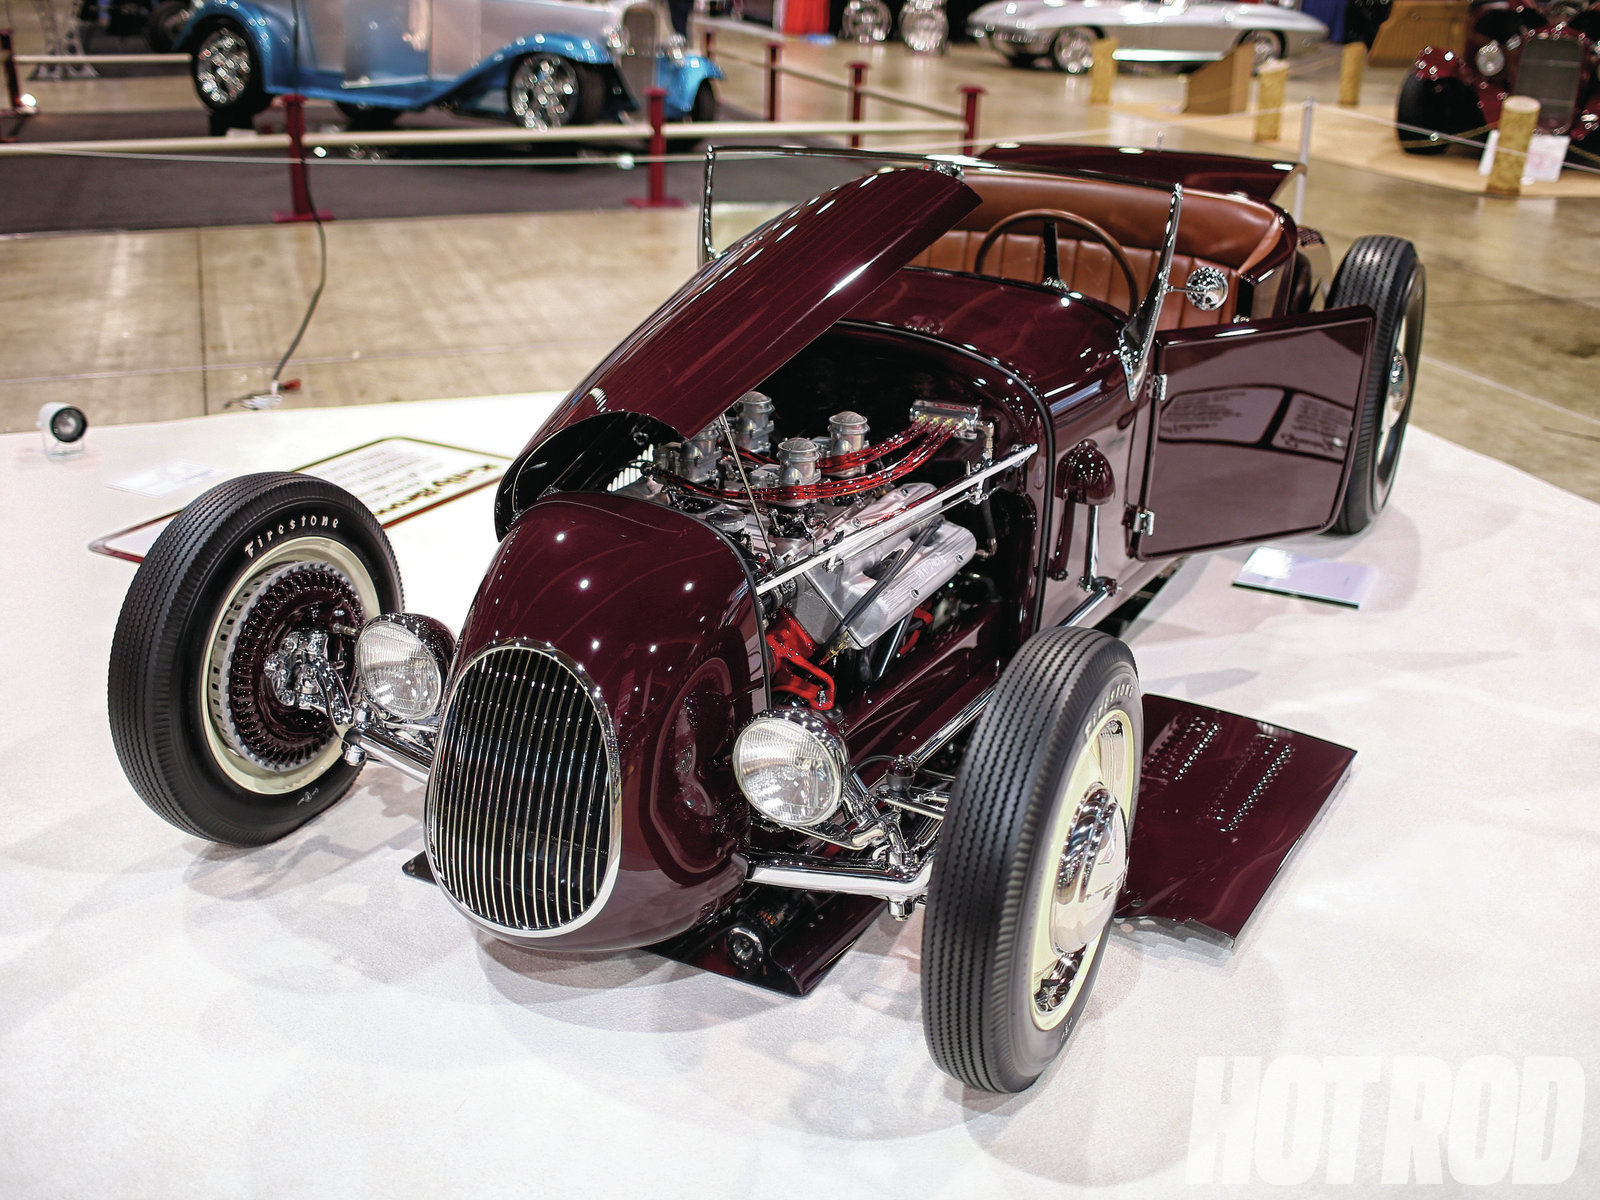 As displayed, the '13 AMBR winner features a Steve Davis–fab'd track nose and hood and rare Kinmont disc brakes all around. Rather than displaying over-the-top gimmicks, components, or fabrication, the roadster epitomizes the height of traditional roadster building. Even the way it was displayed was trad. It would appear that this type of approach is being rewarded at the Grand National Roadster Show, based on the last three years of the new judging.